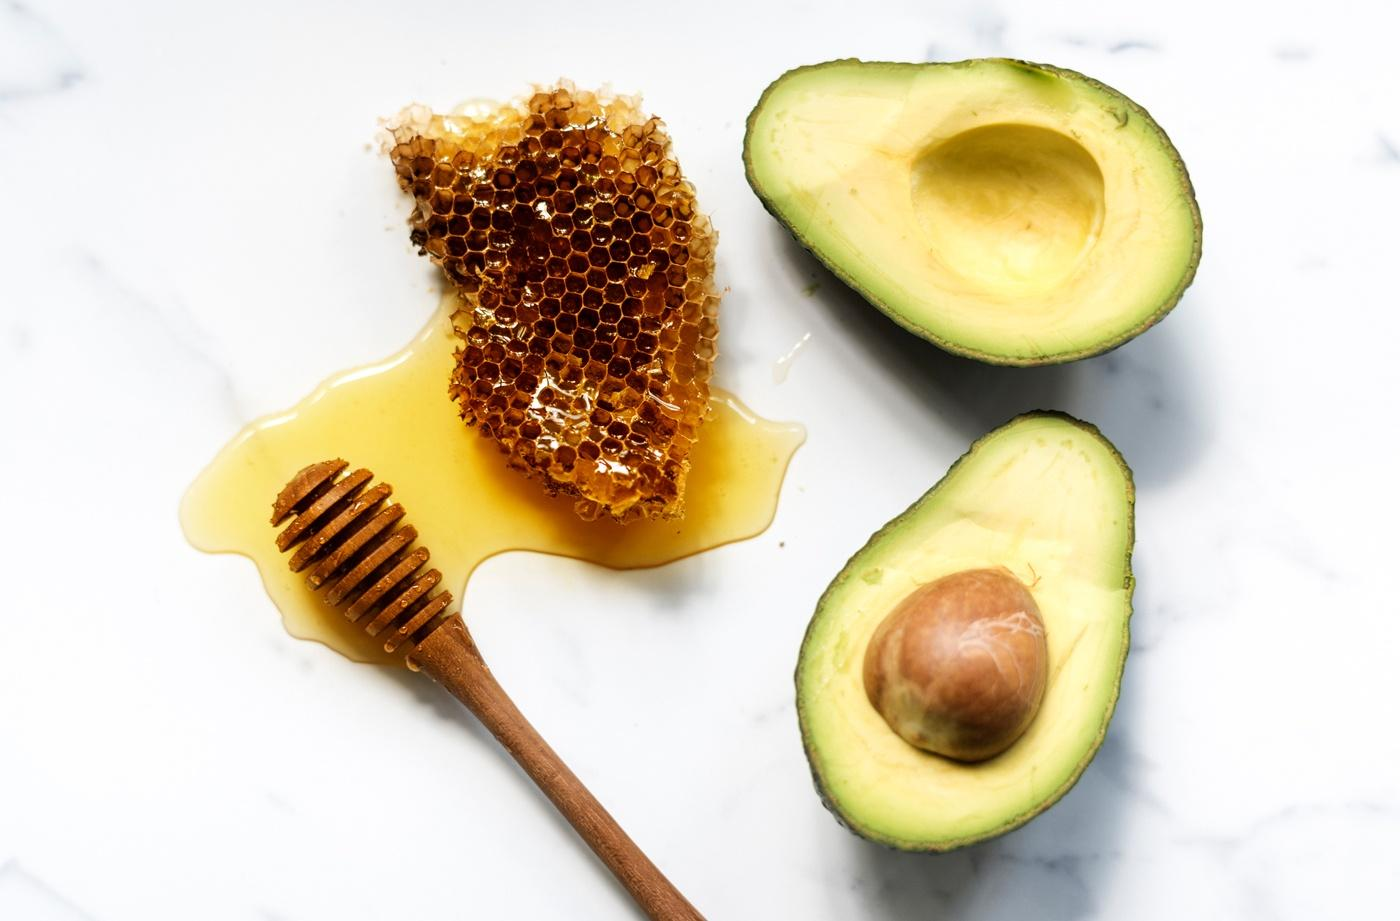 Avocado mask: Why you should use one on your skin | Well+Good